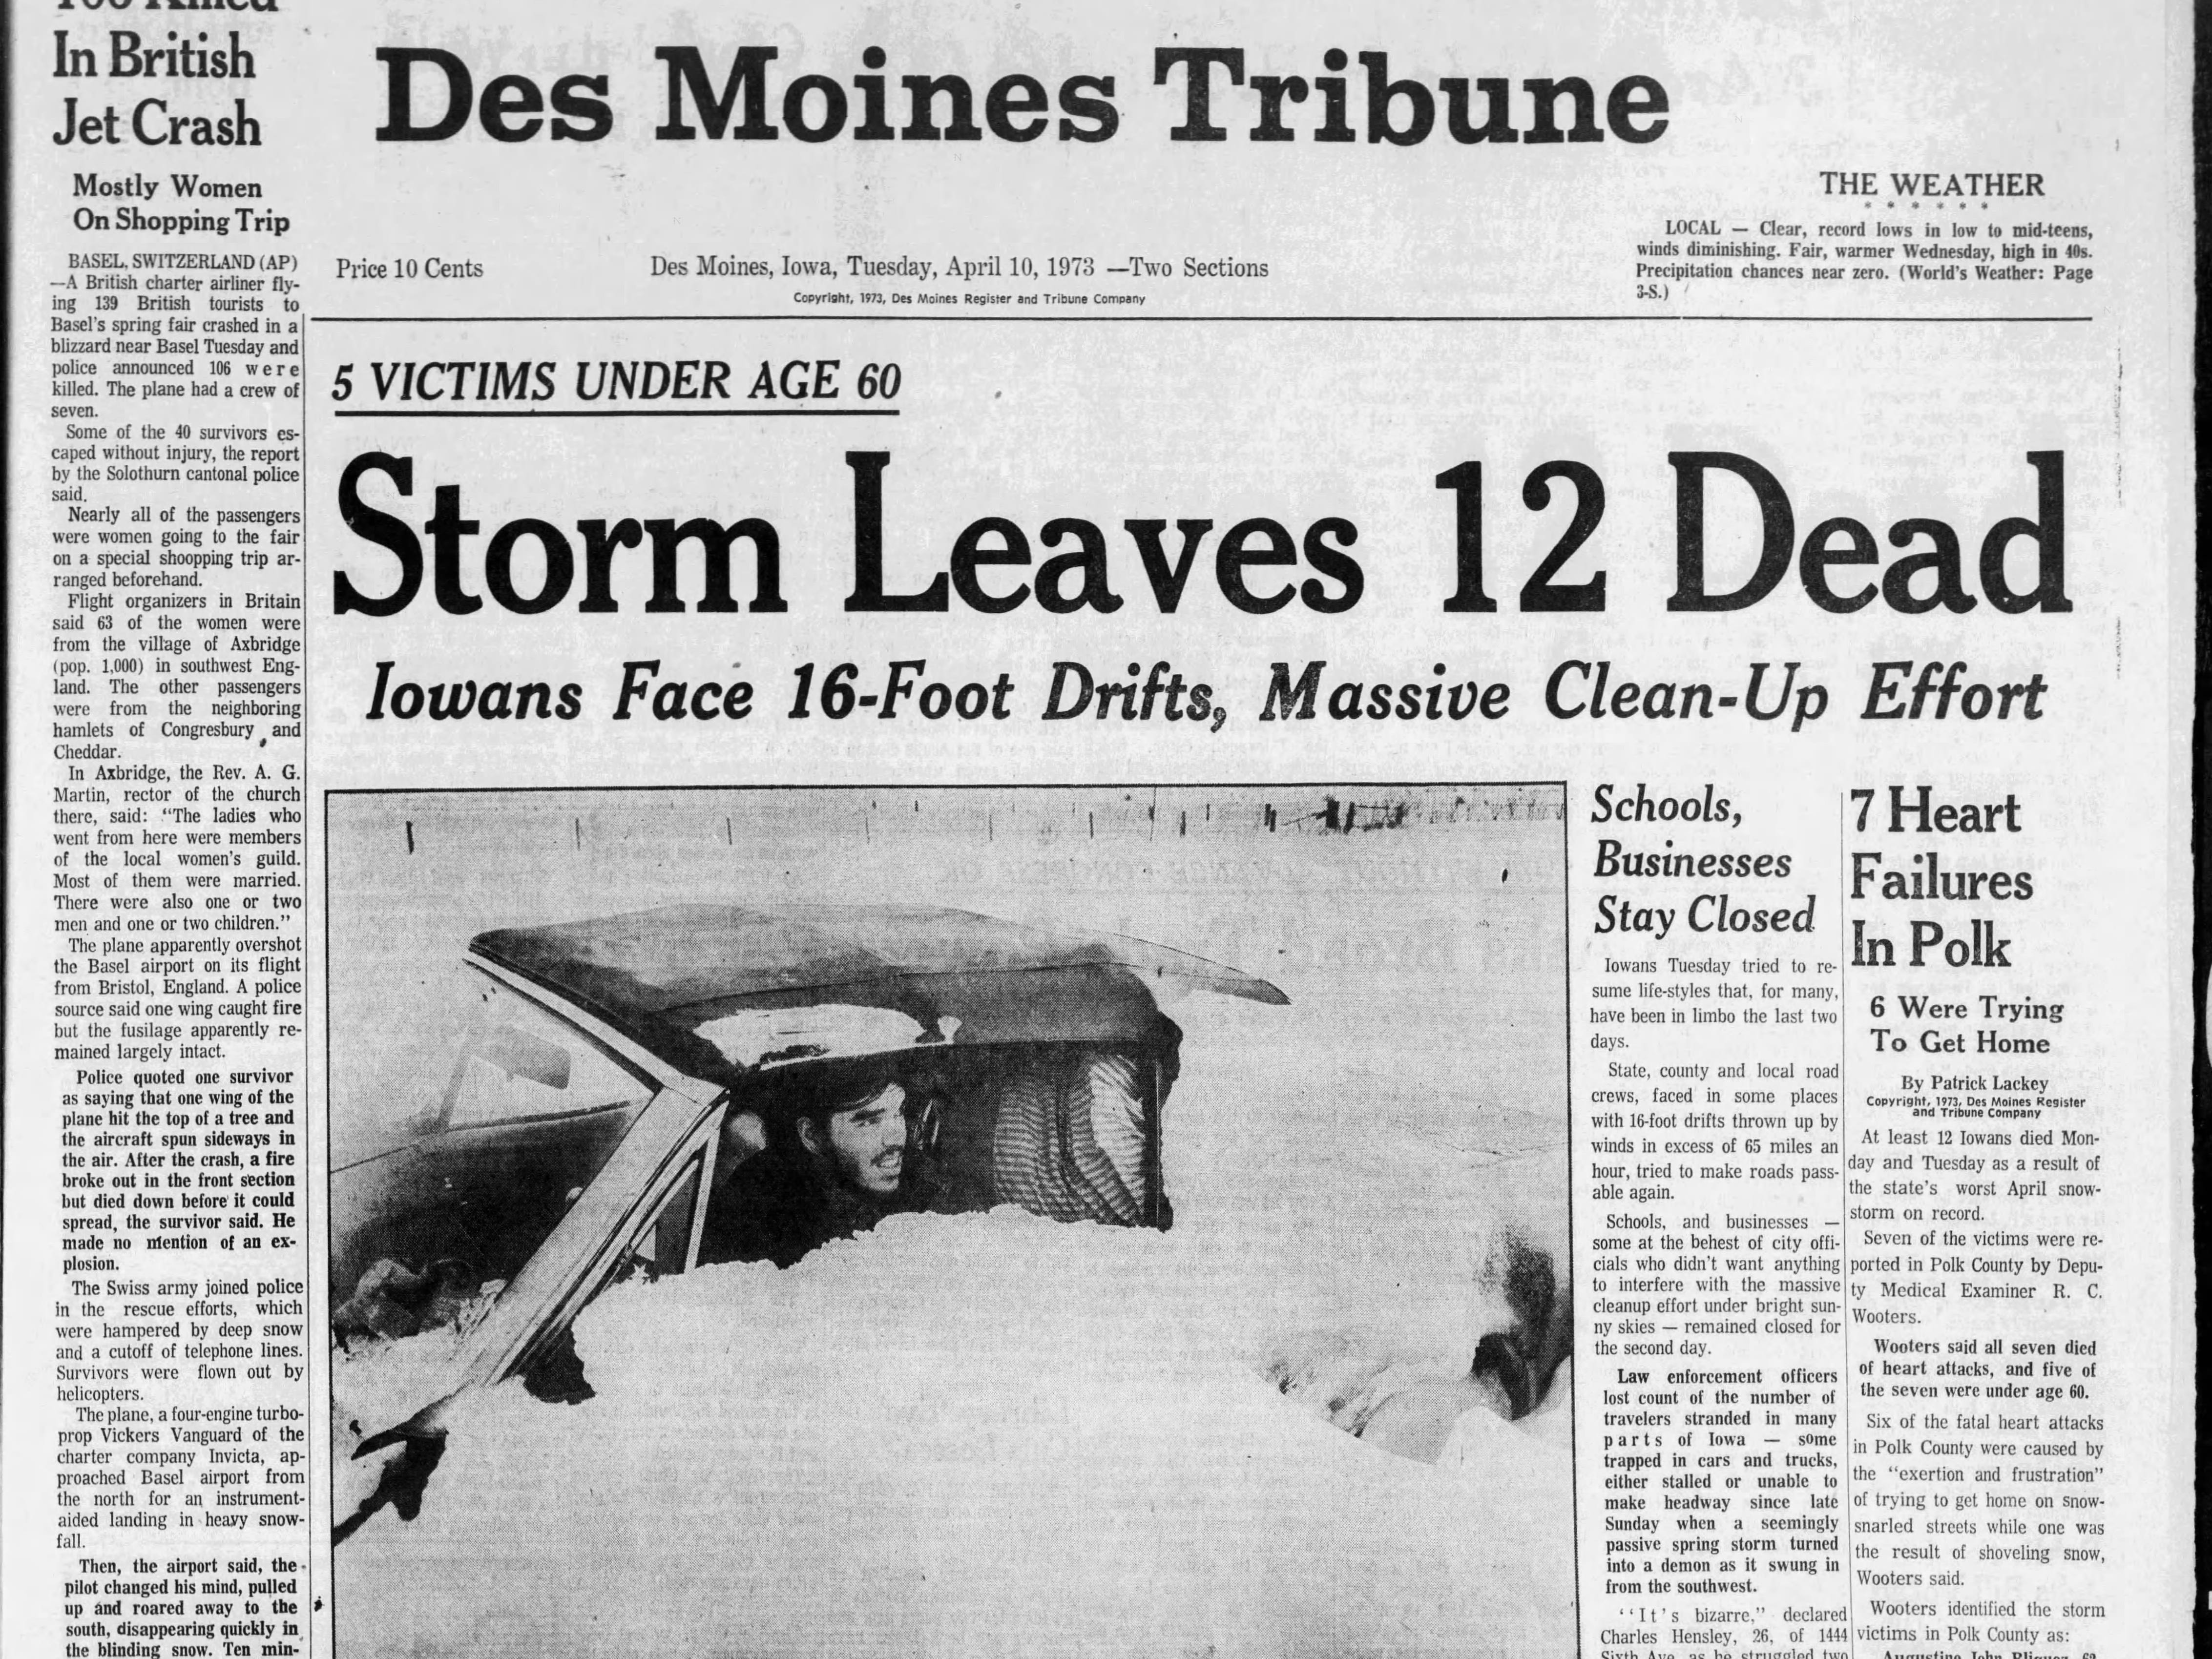 Page 1A of the April 10, 1973 Des Moines Tribune, with coverage of one of the worst spring blizzards ever recorded in April.